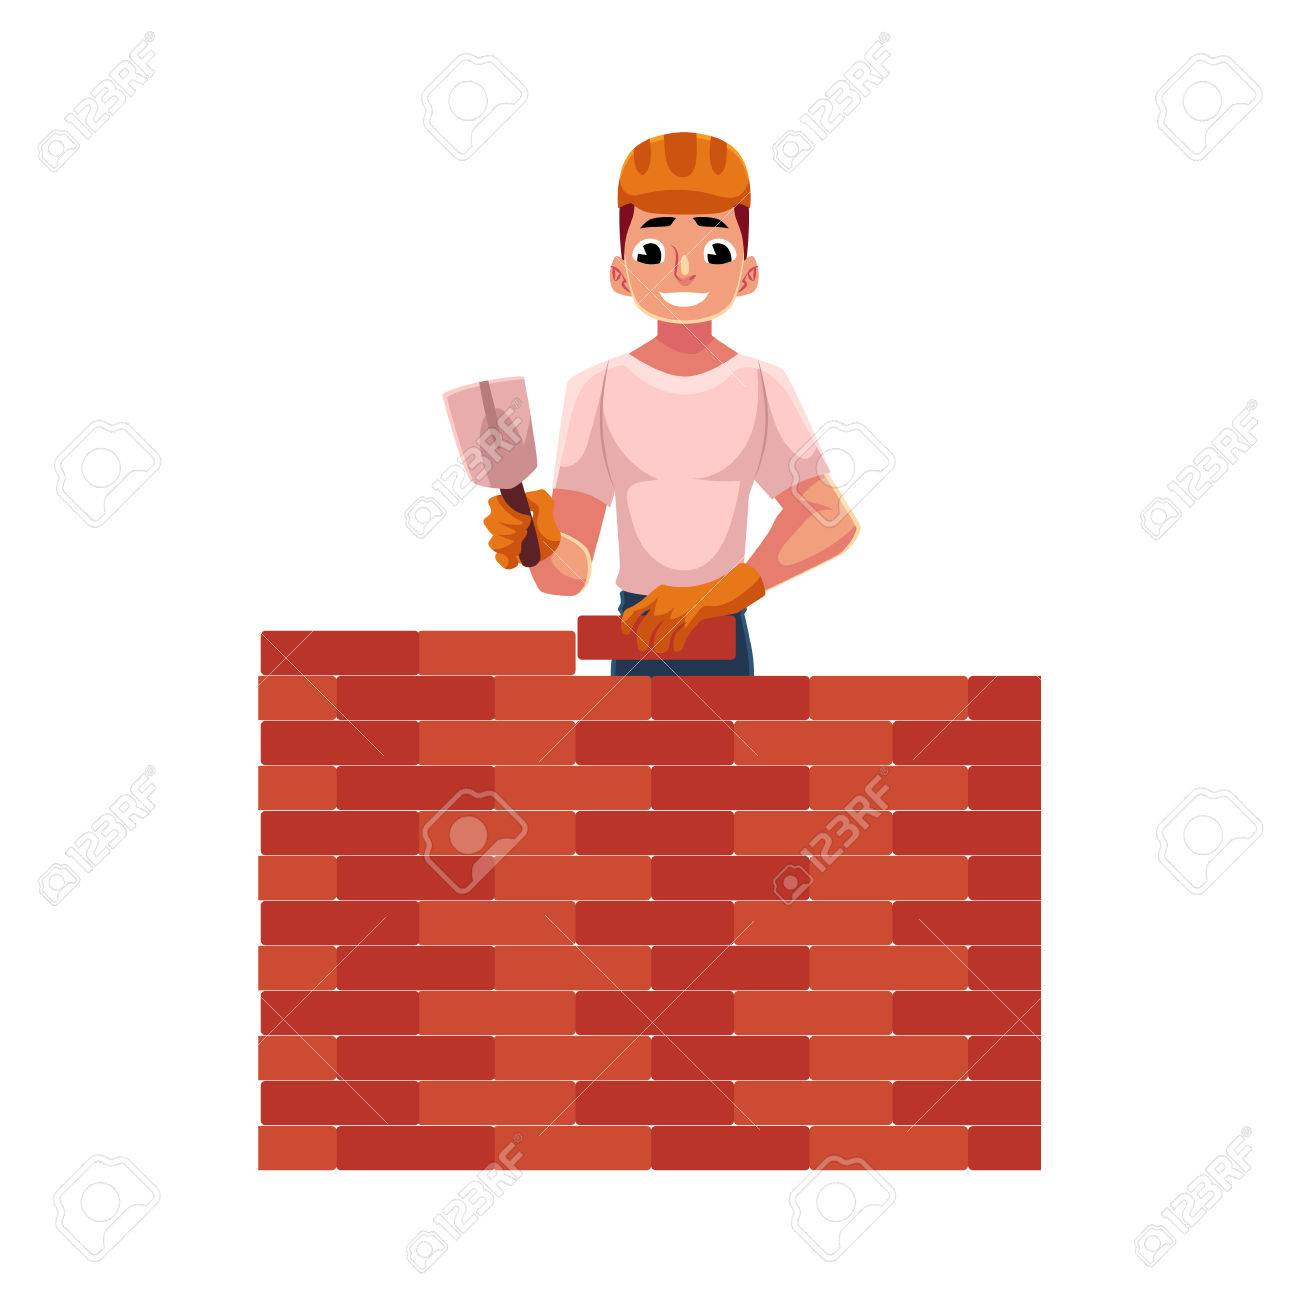 Construction Worker Builder In Hardhat Building Brick Wall Cartoon Vector Illustration Isolated On White